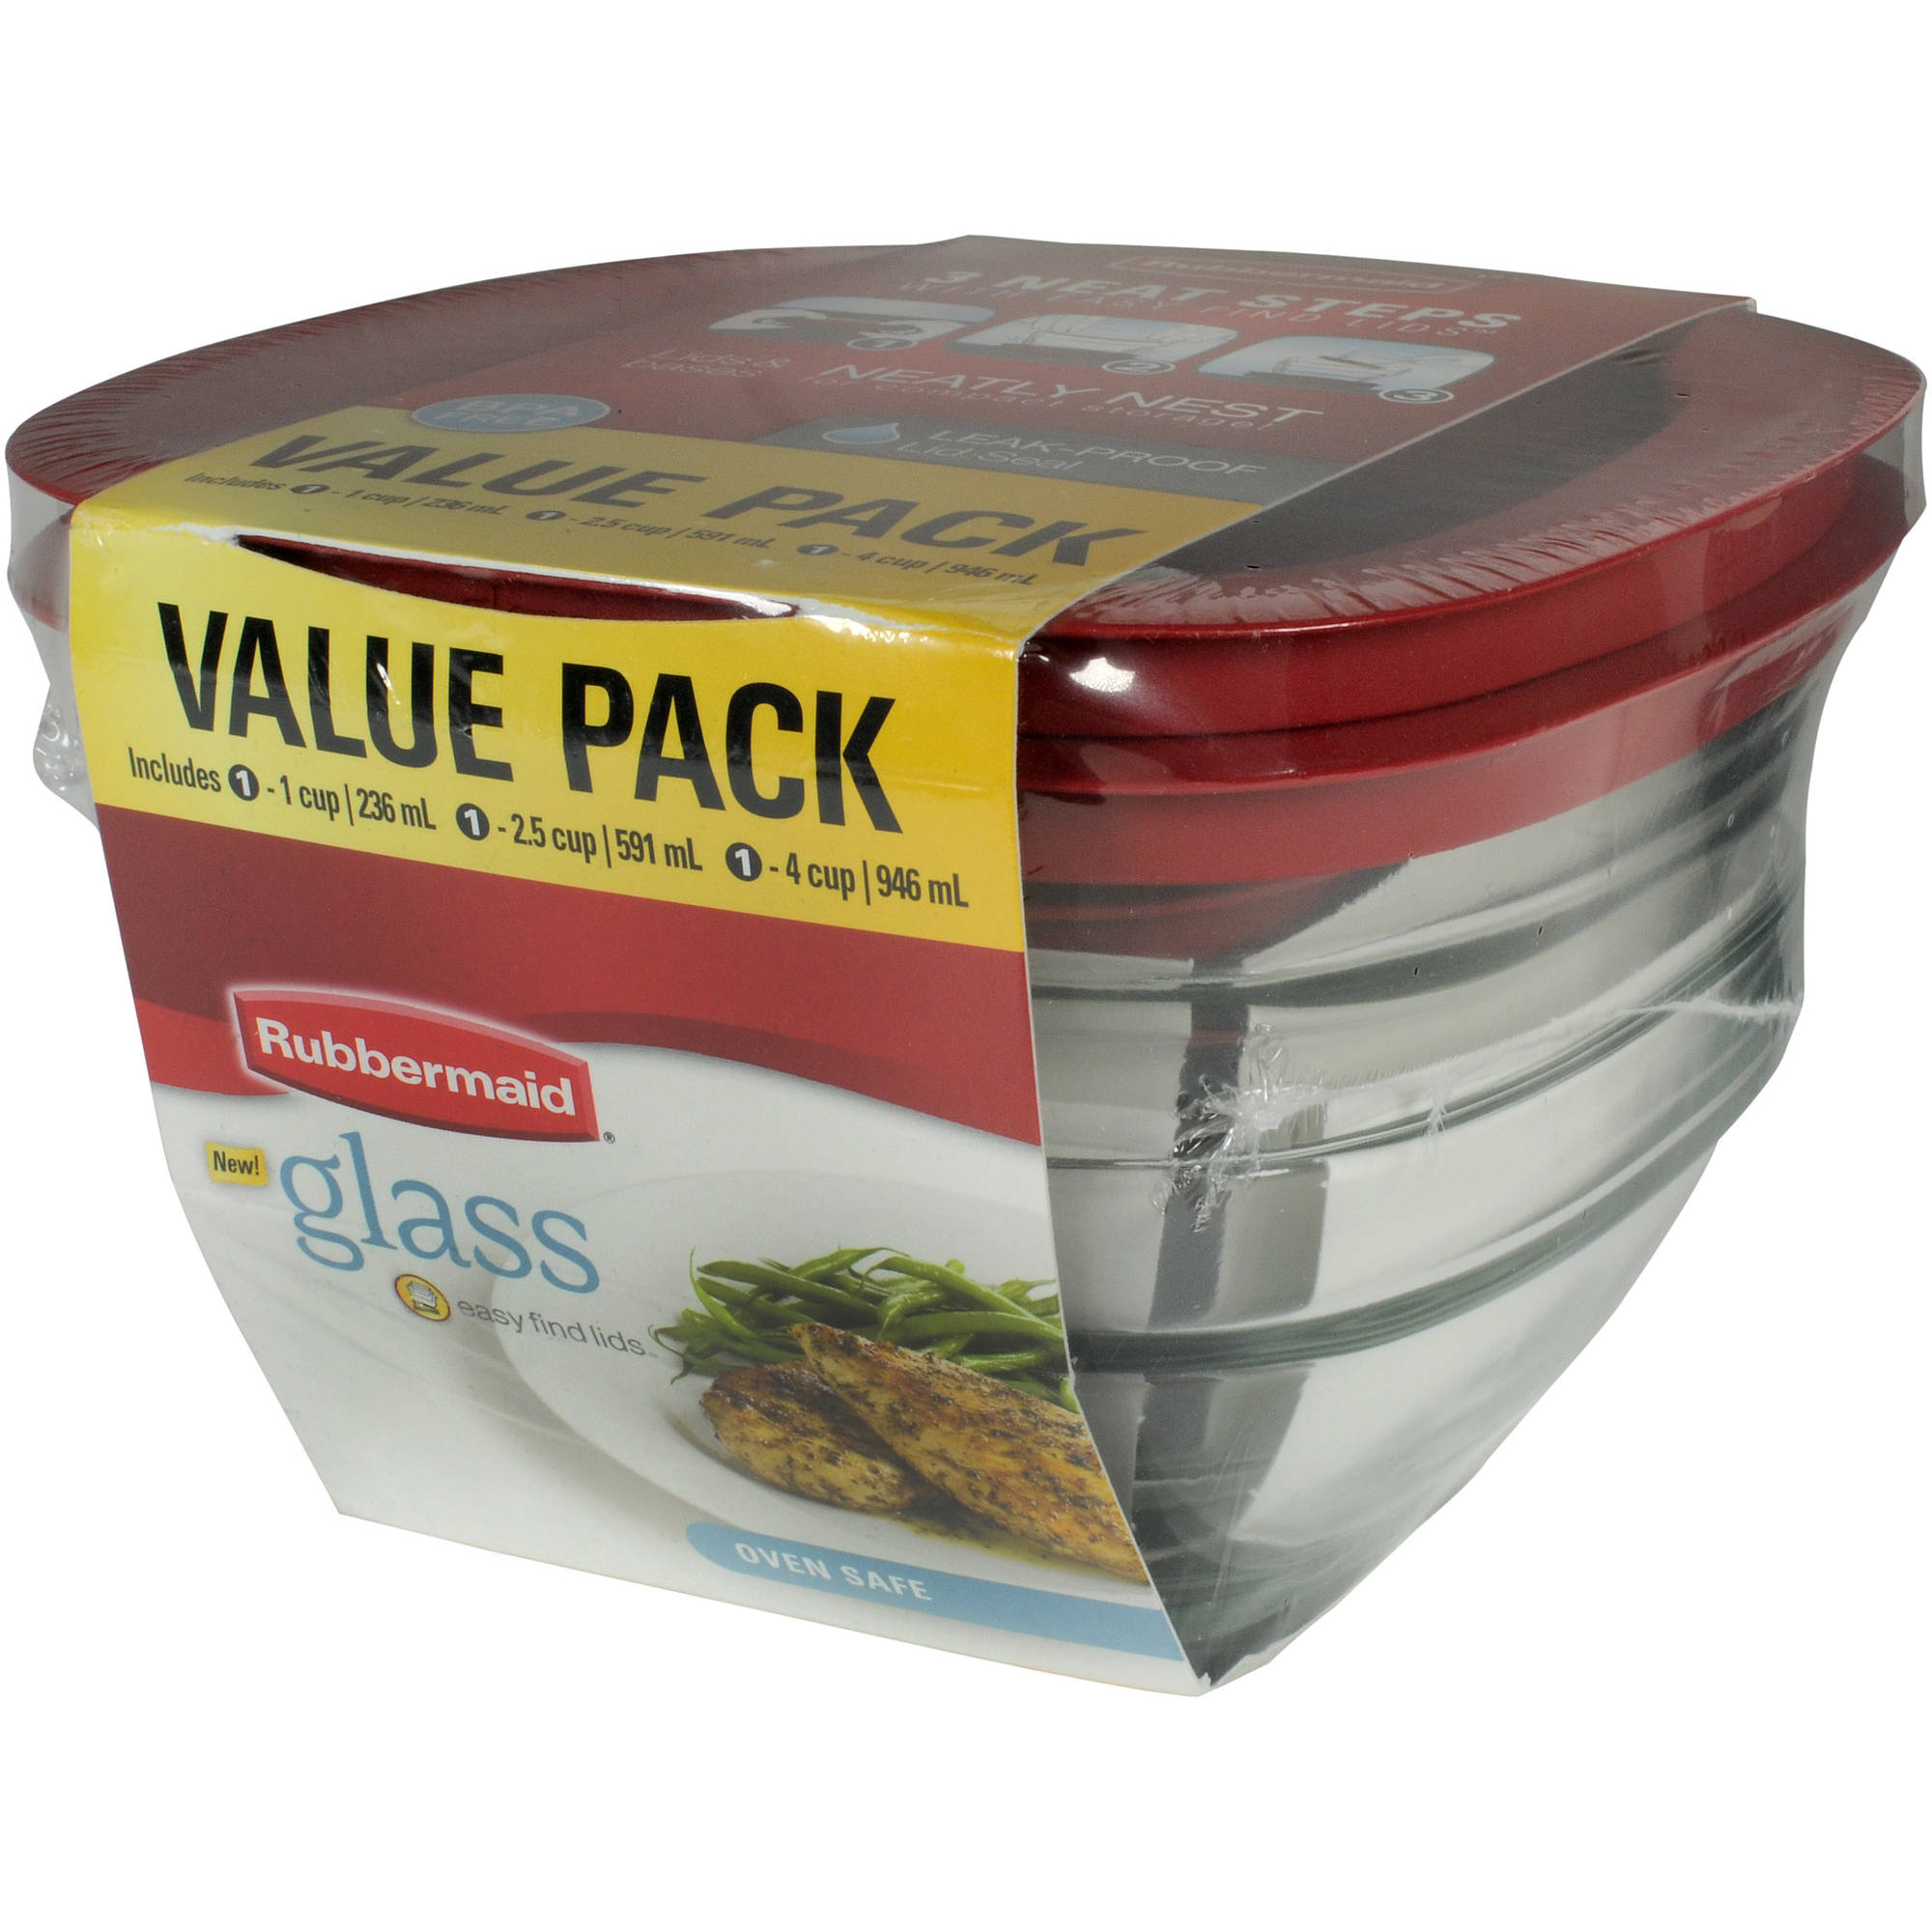 Rubbermaid 6-Piece Glass Food Storage Value Pack